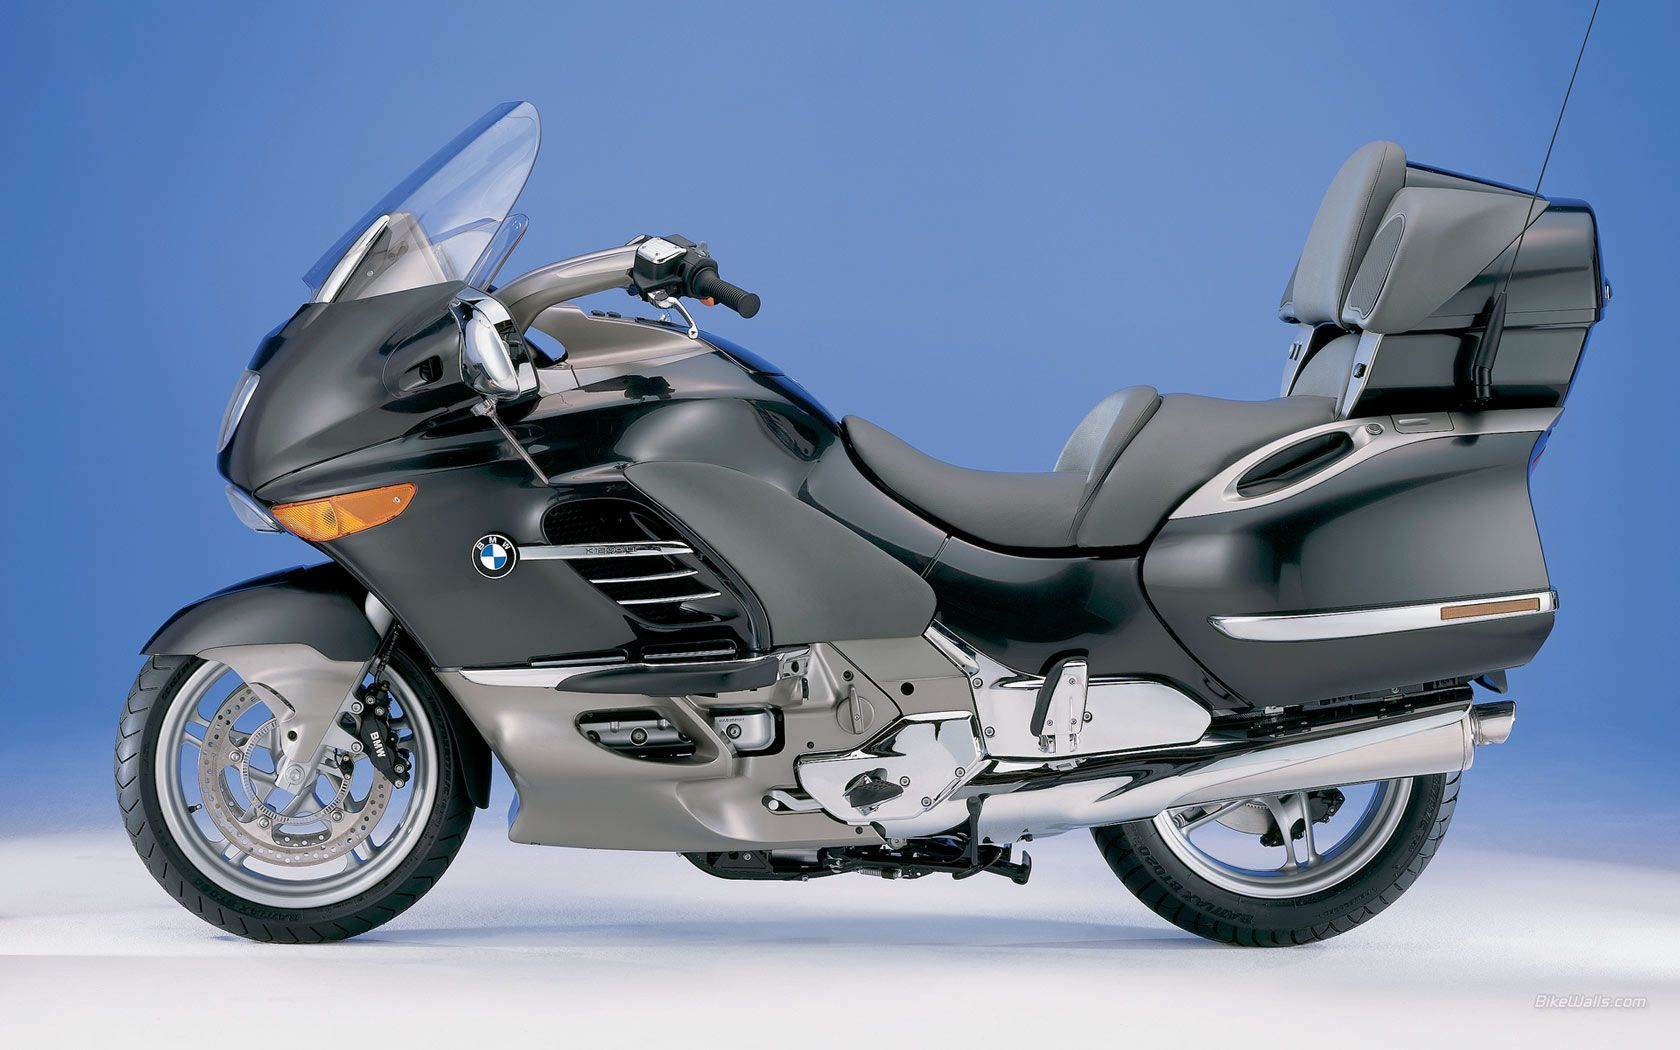 Free BMW K 1200 LT motorcycle wallpaper with 1680 x 1050 resolution